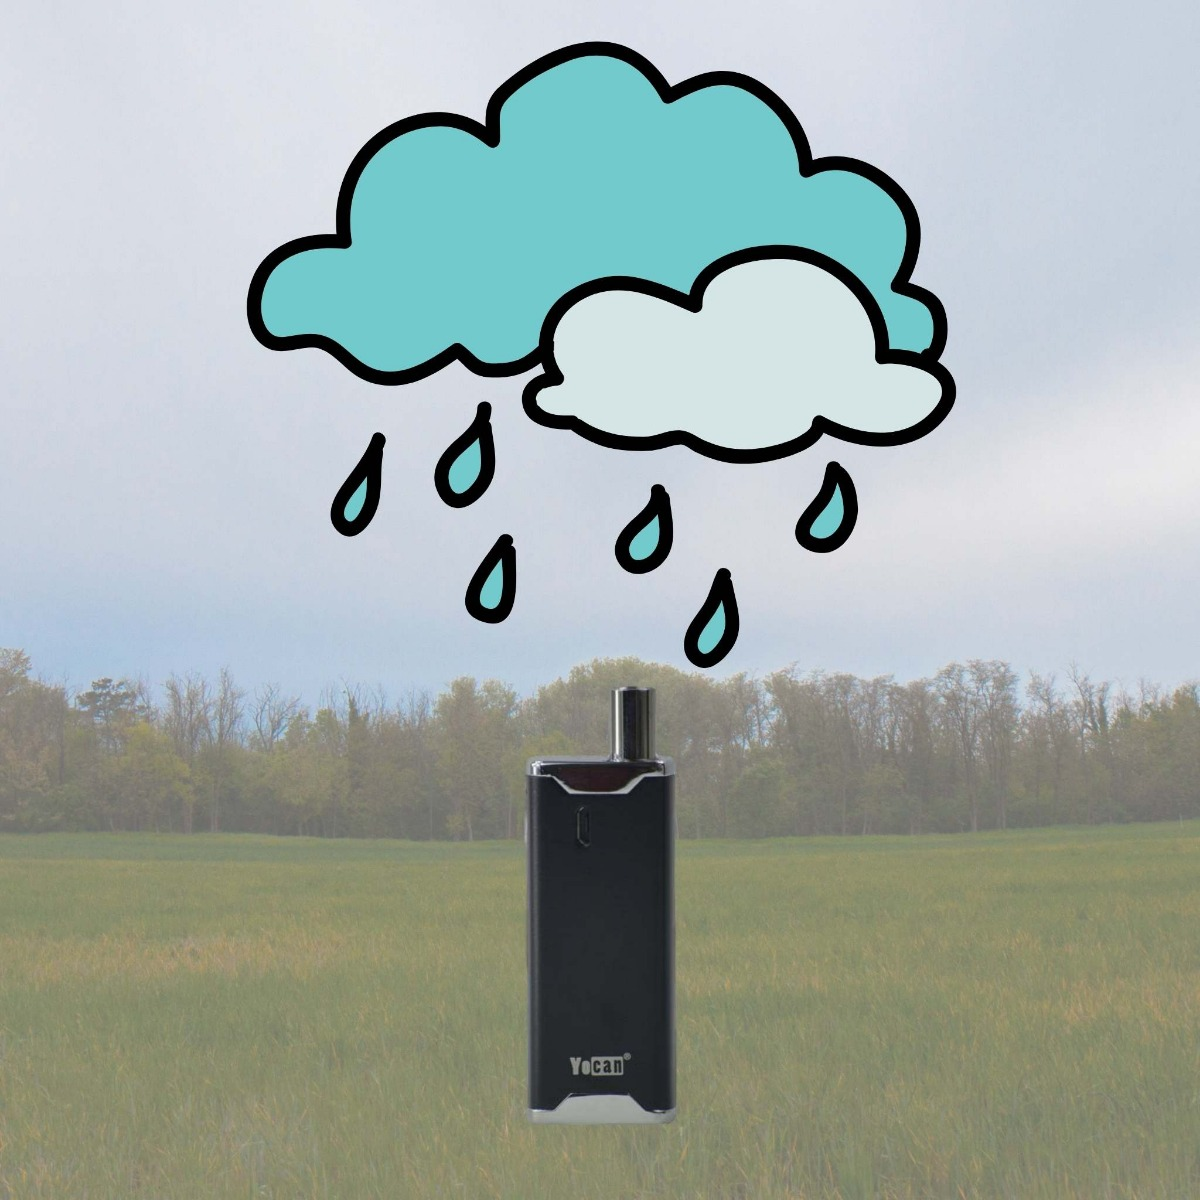 Vaporizer left outside and an animation of rain coming down